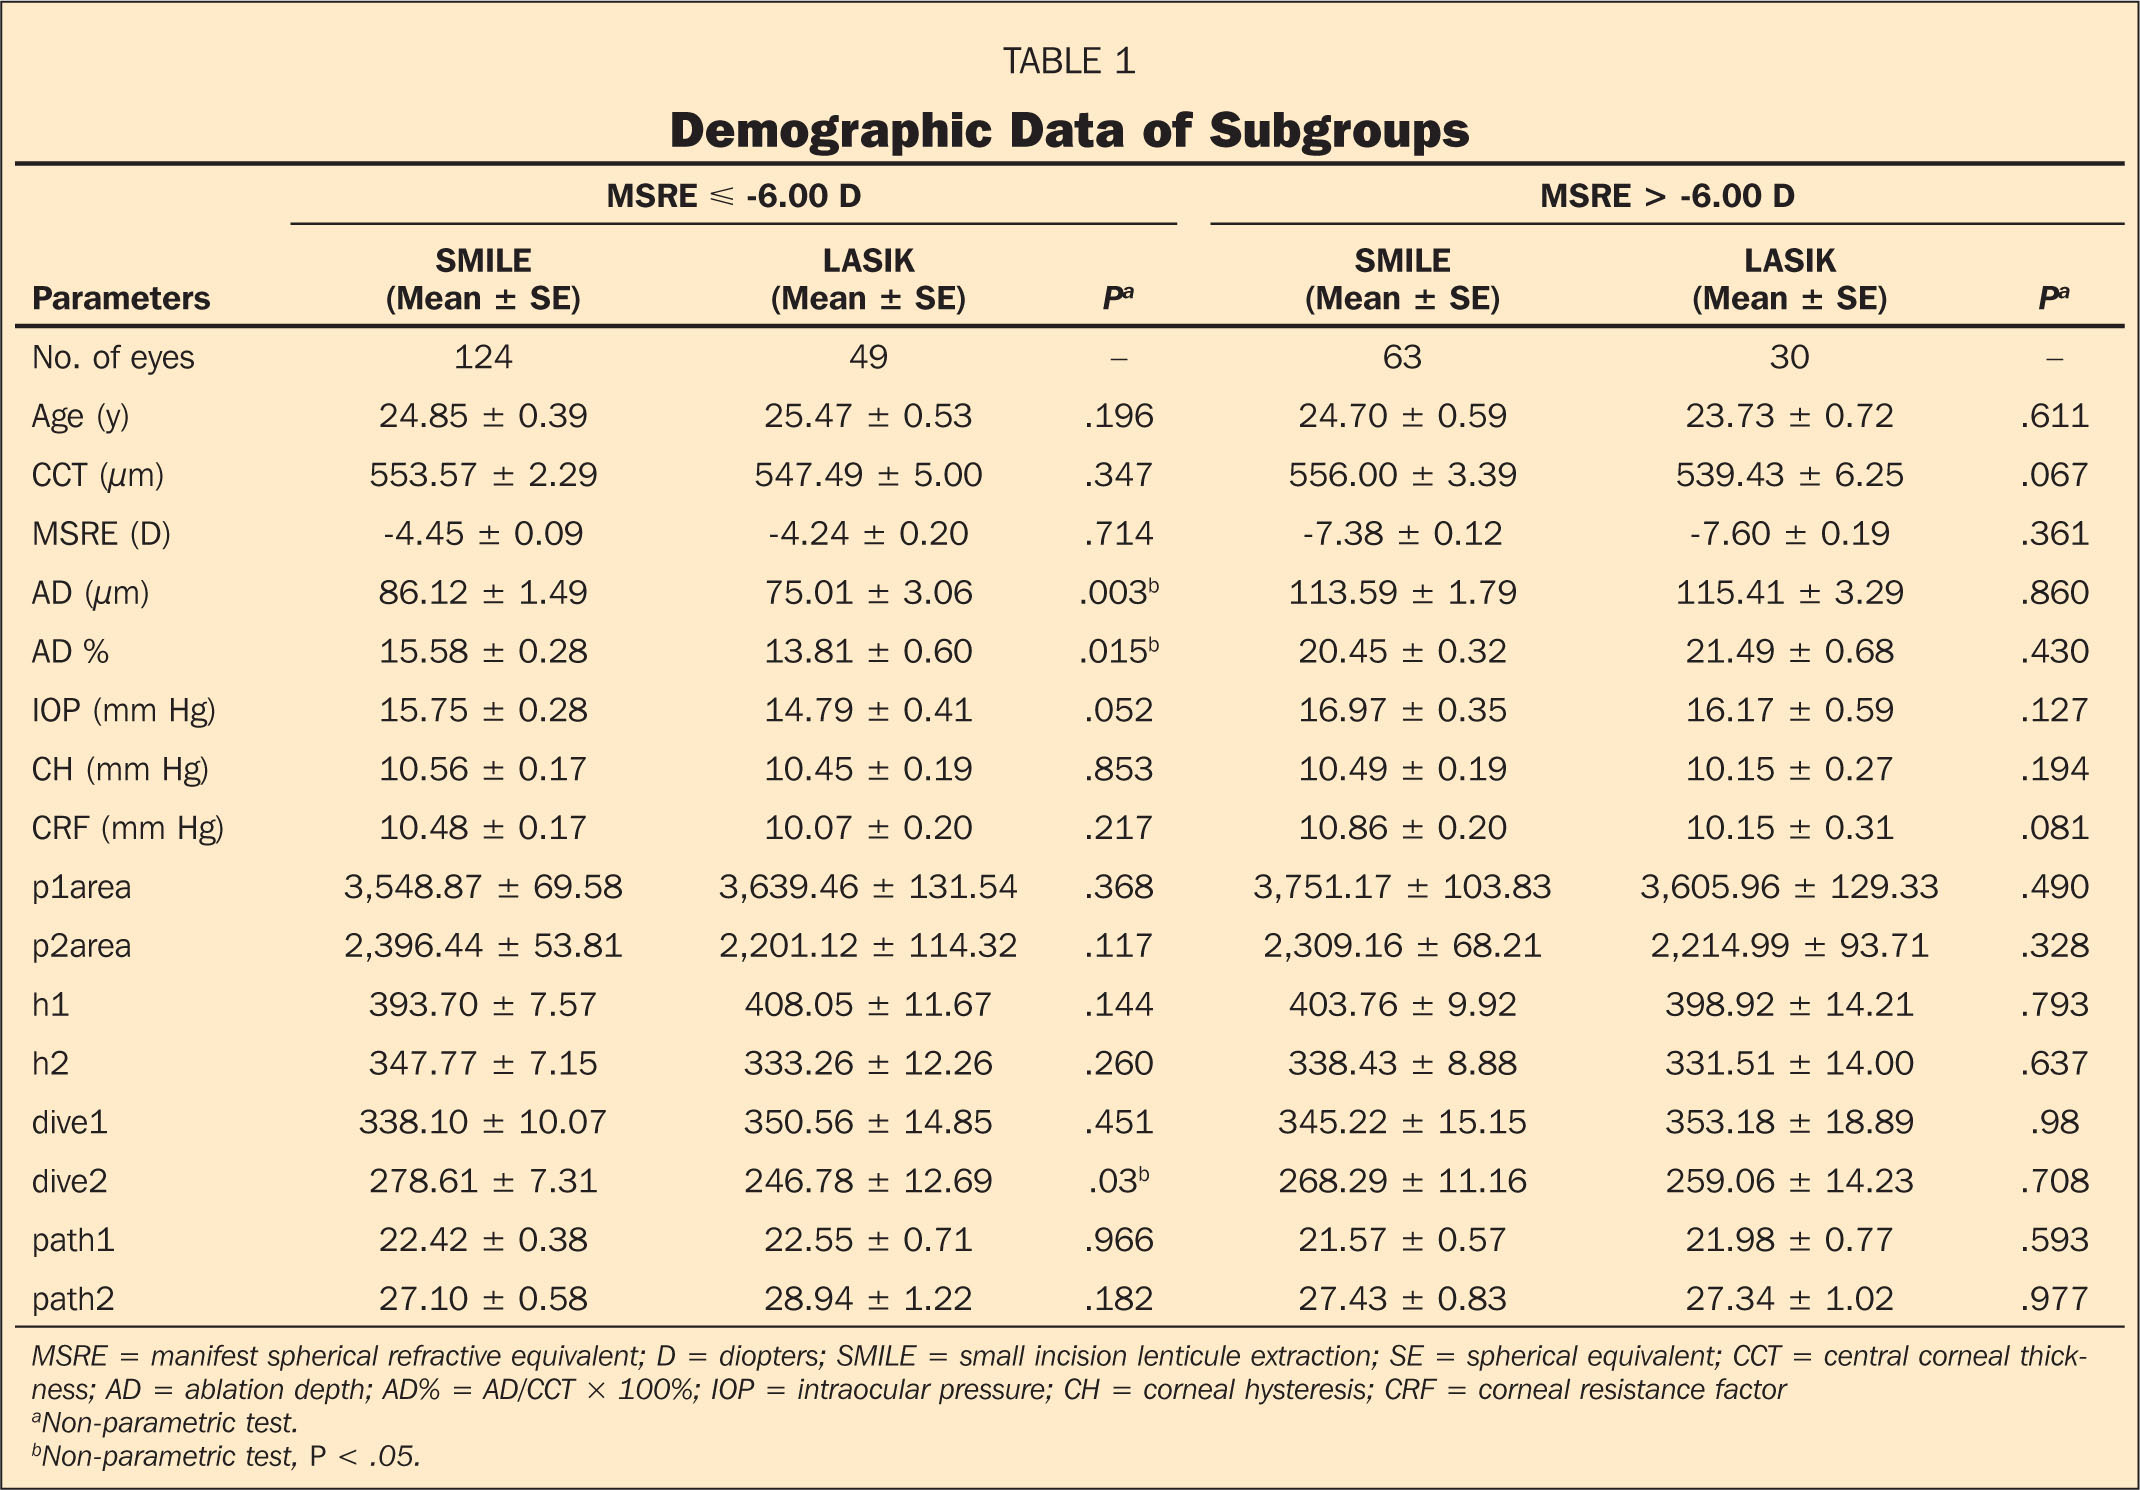 Demographic Data of Subgroups